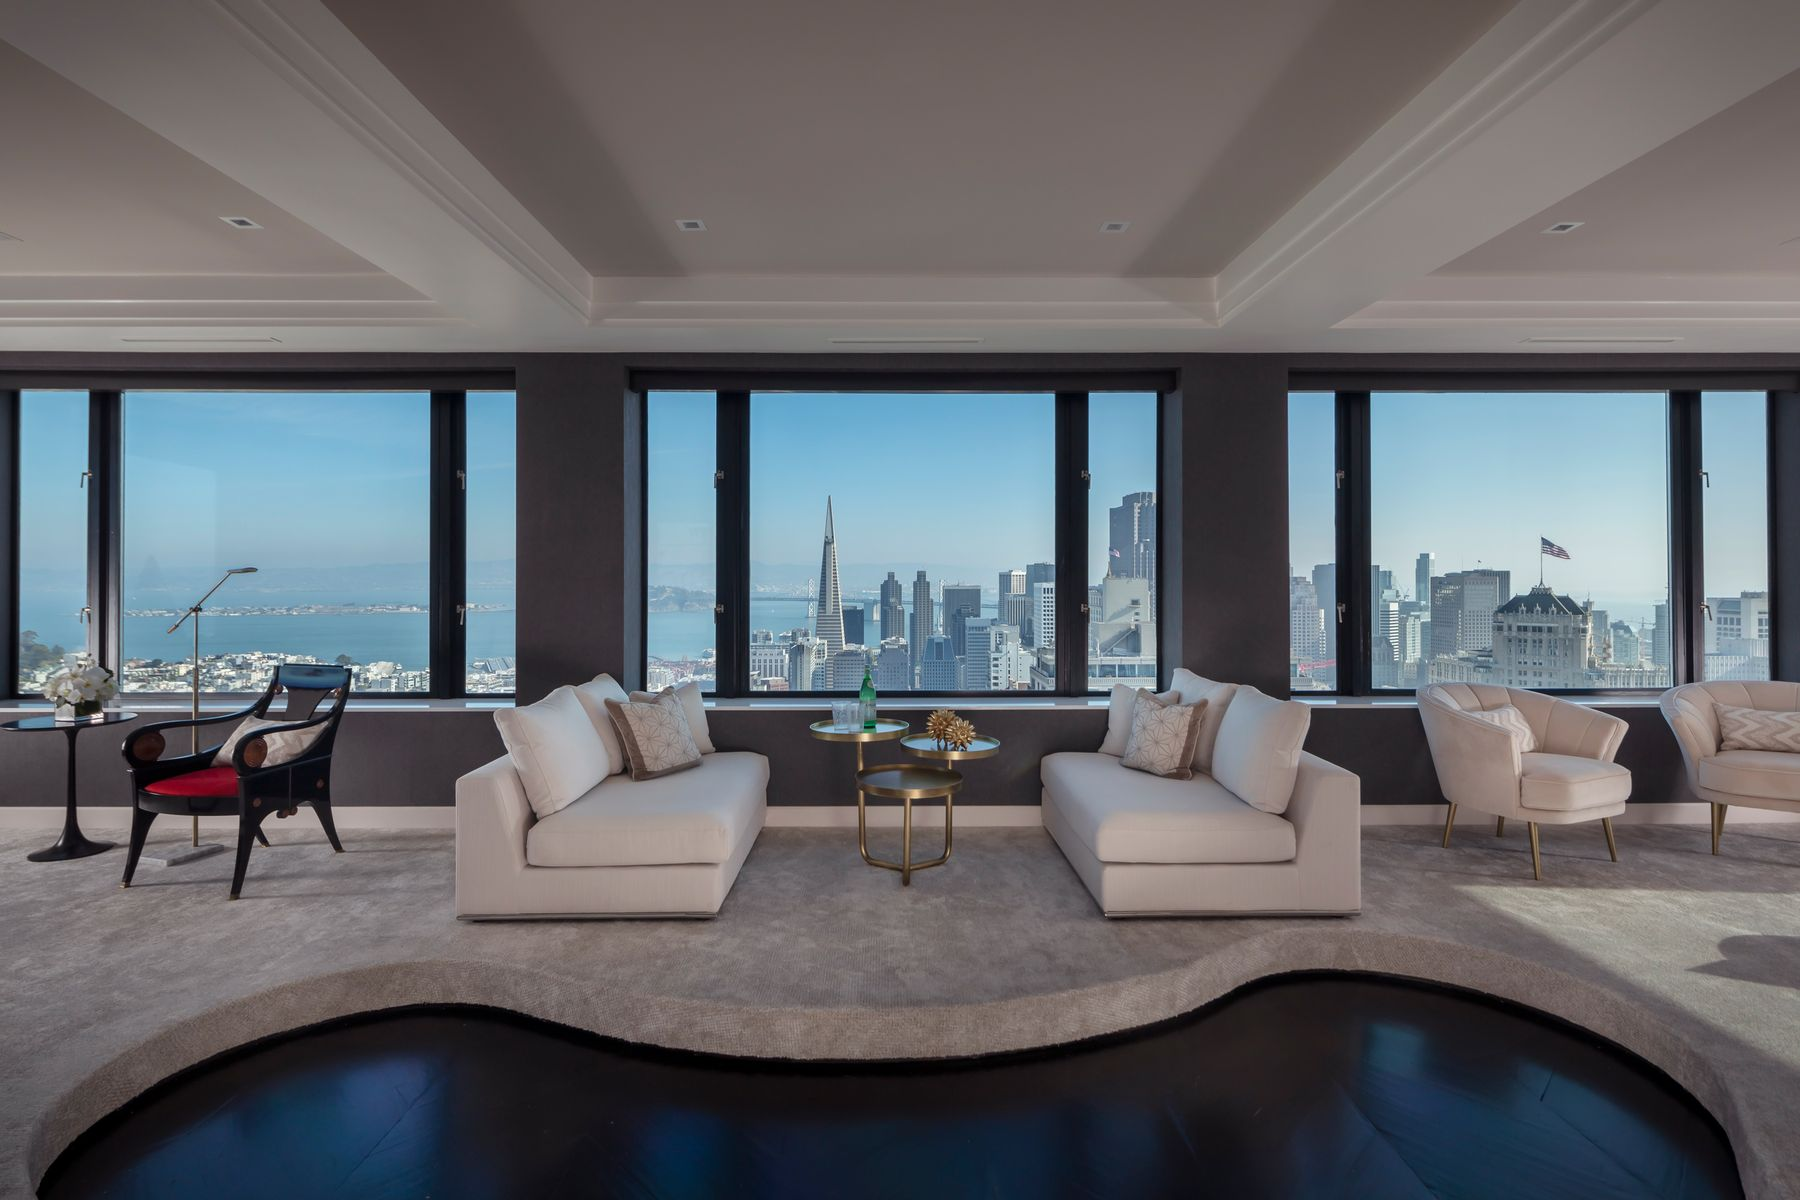 Condominiums for Active at 360 Degree View Nob Hill Penthouse 1250 Jones St Penthouse 1901 San Francisco, California 94109 United States